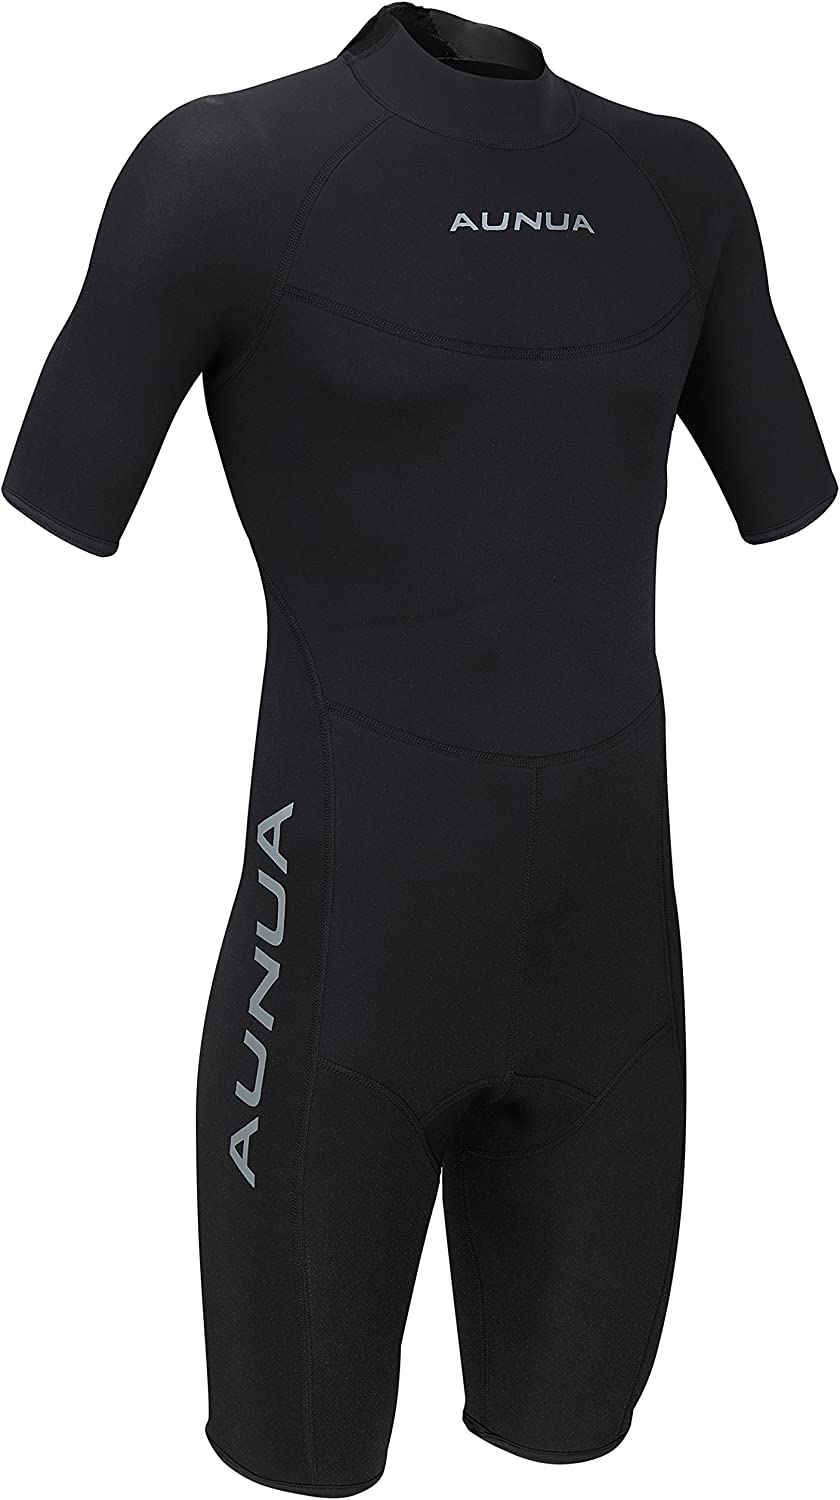 Aunua Men's 3mm Premium Neoprene Shorty Wetsuits Canoeing Diving Suit